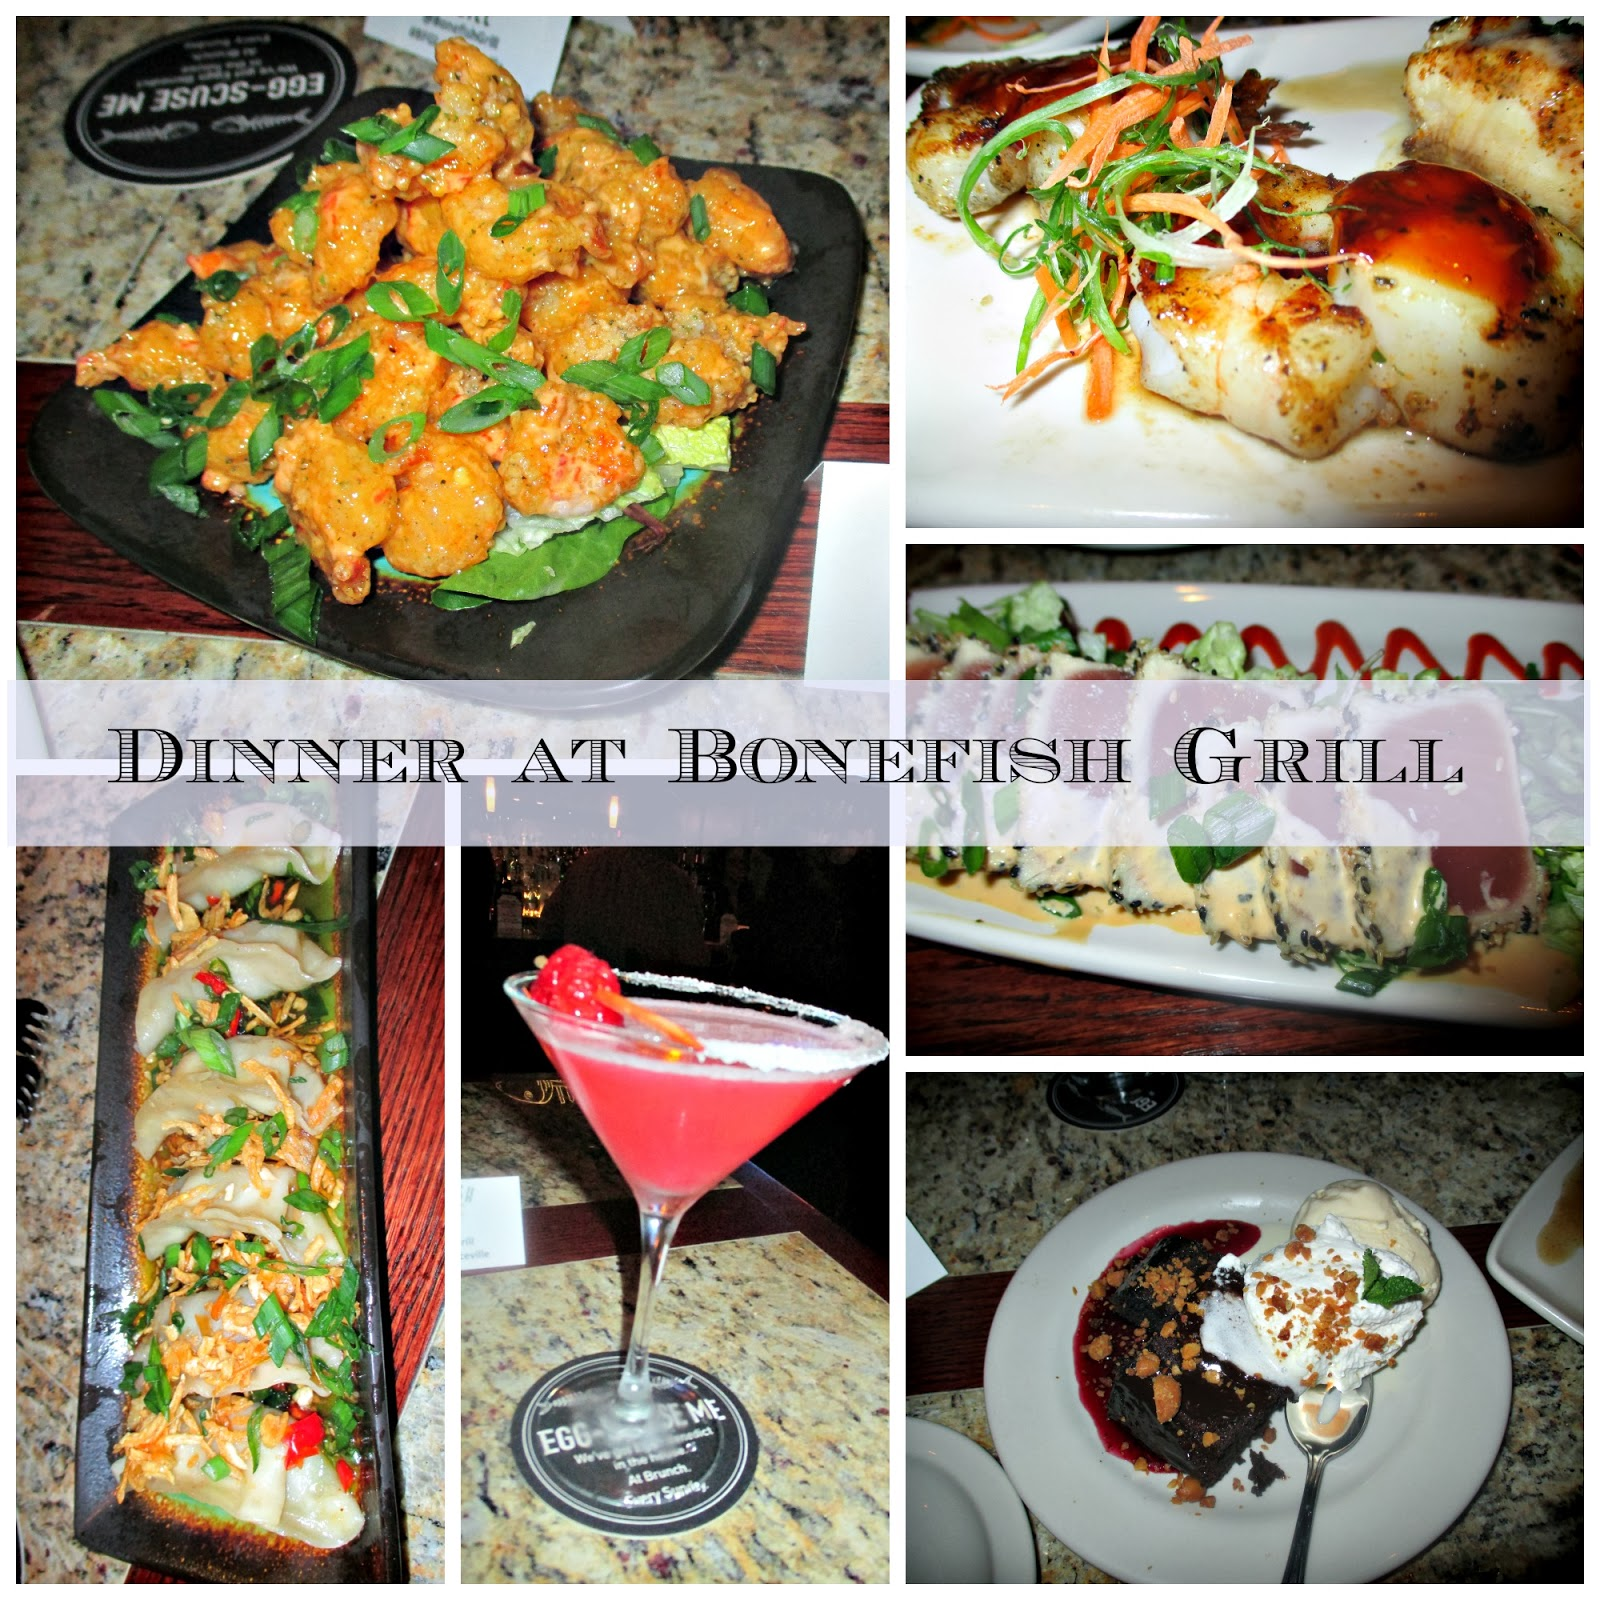 Bonefish grill now open in lawrenceville nj review a for Bone fish and grill